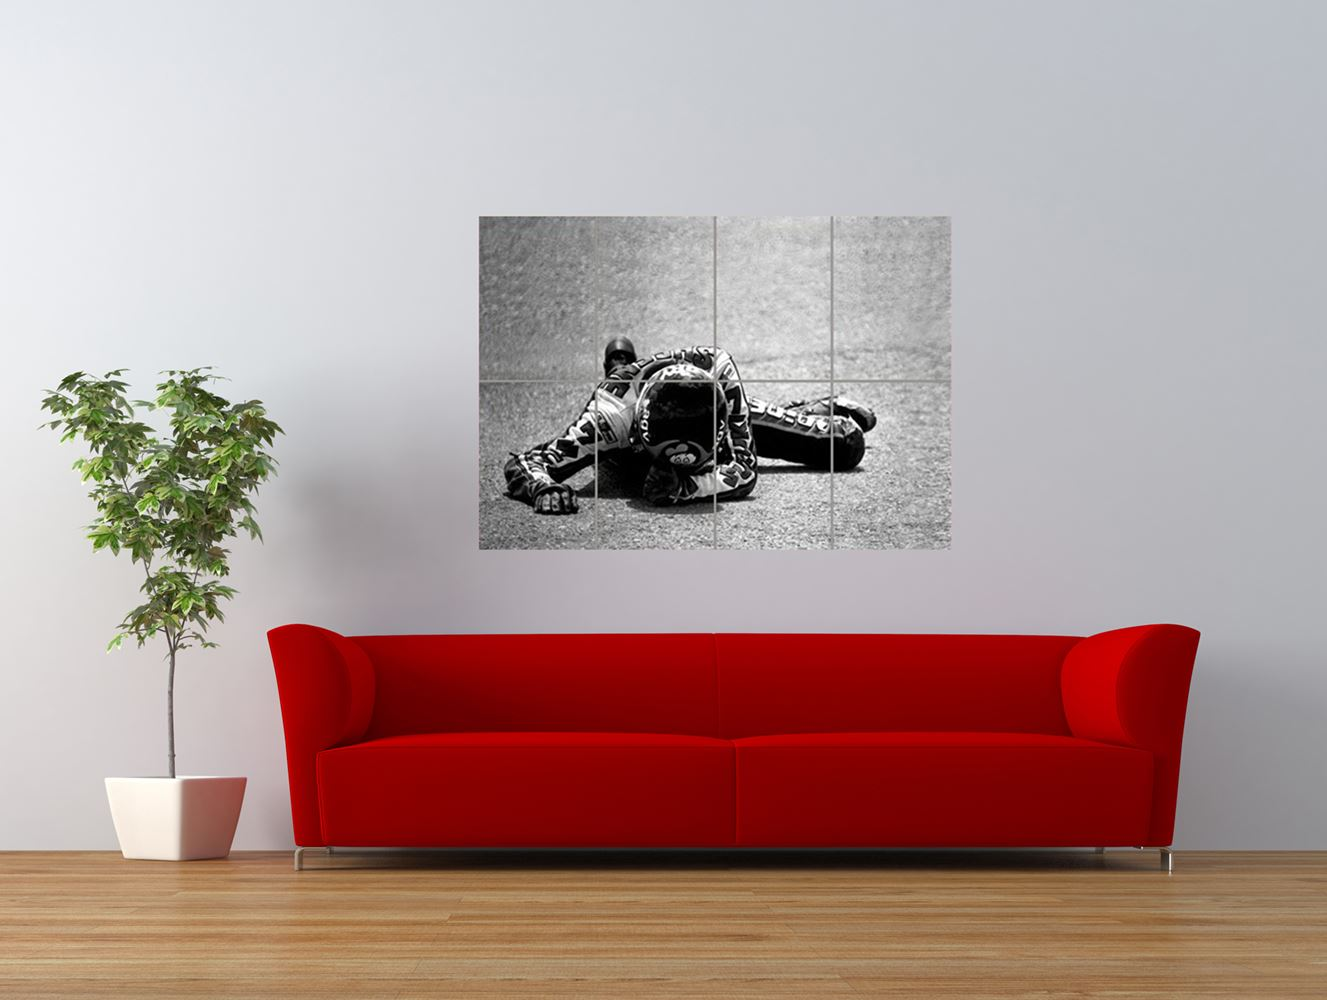 barry sheene motorbike motor sport champion giant art print panel poster nor0497 ebay. Black Bedroom Furniture Sets. Home Design Ideas